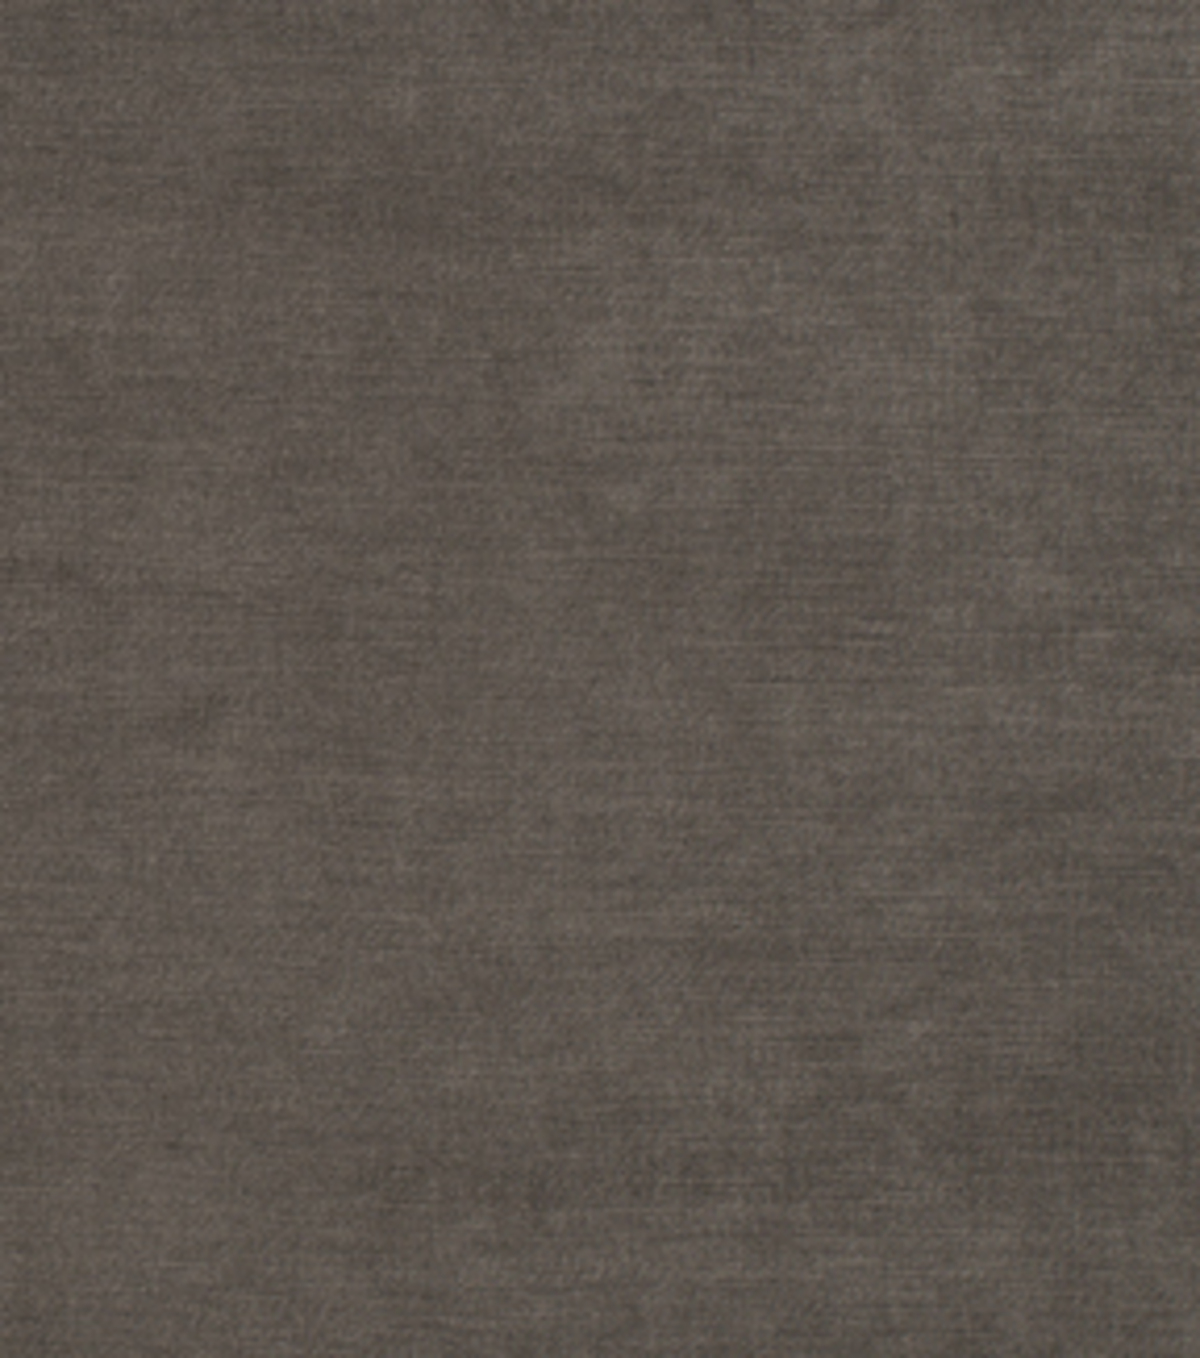 Home Decor 8\u0022x8\u0022 Fabric Swatch-Eaton Square Moonbeam Smoked Pearl